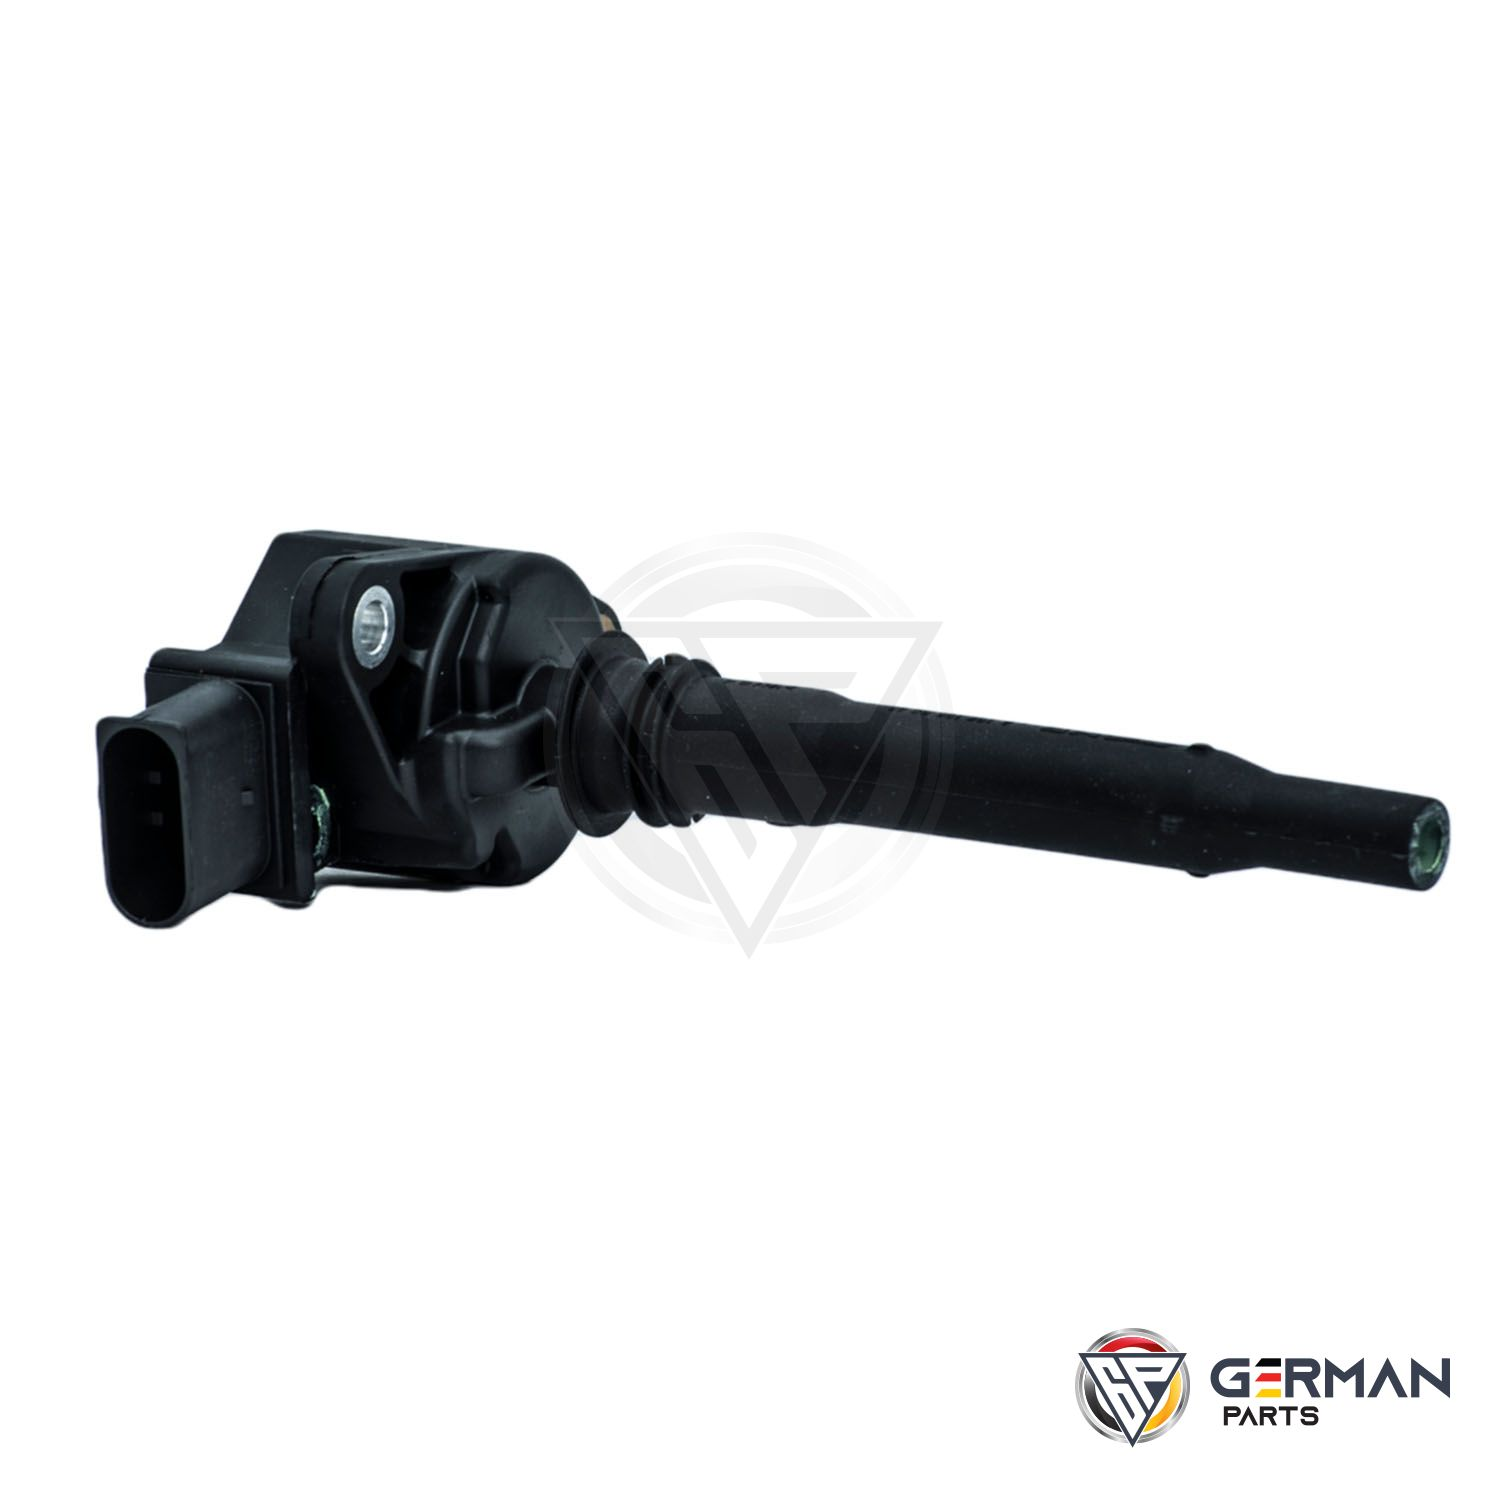 Buy Genuine Mercedes Benz Ignition Coil 1569064400 - German Parts